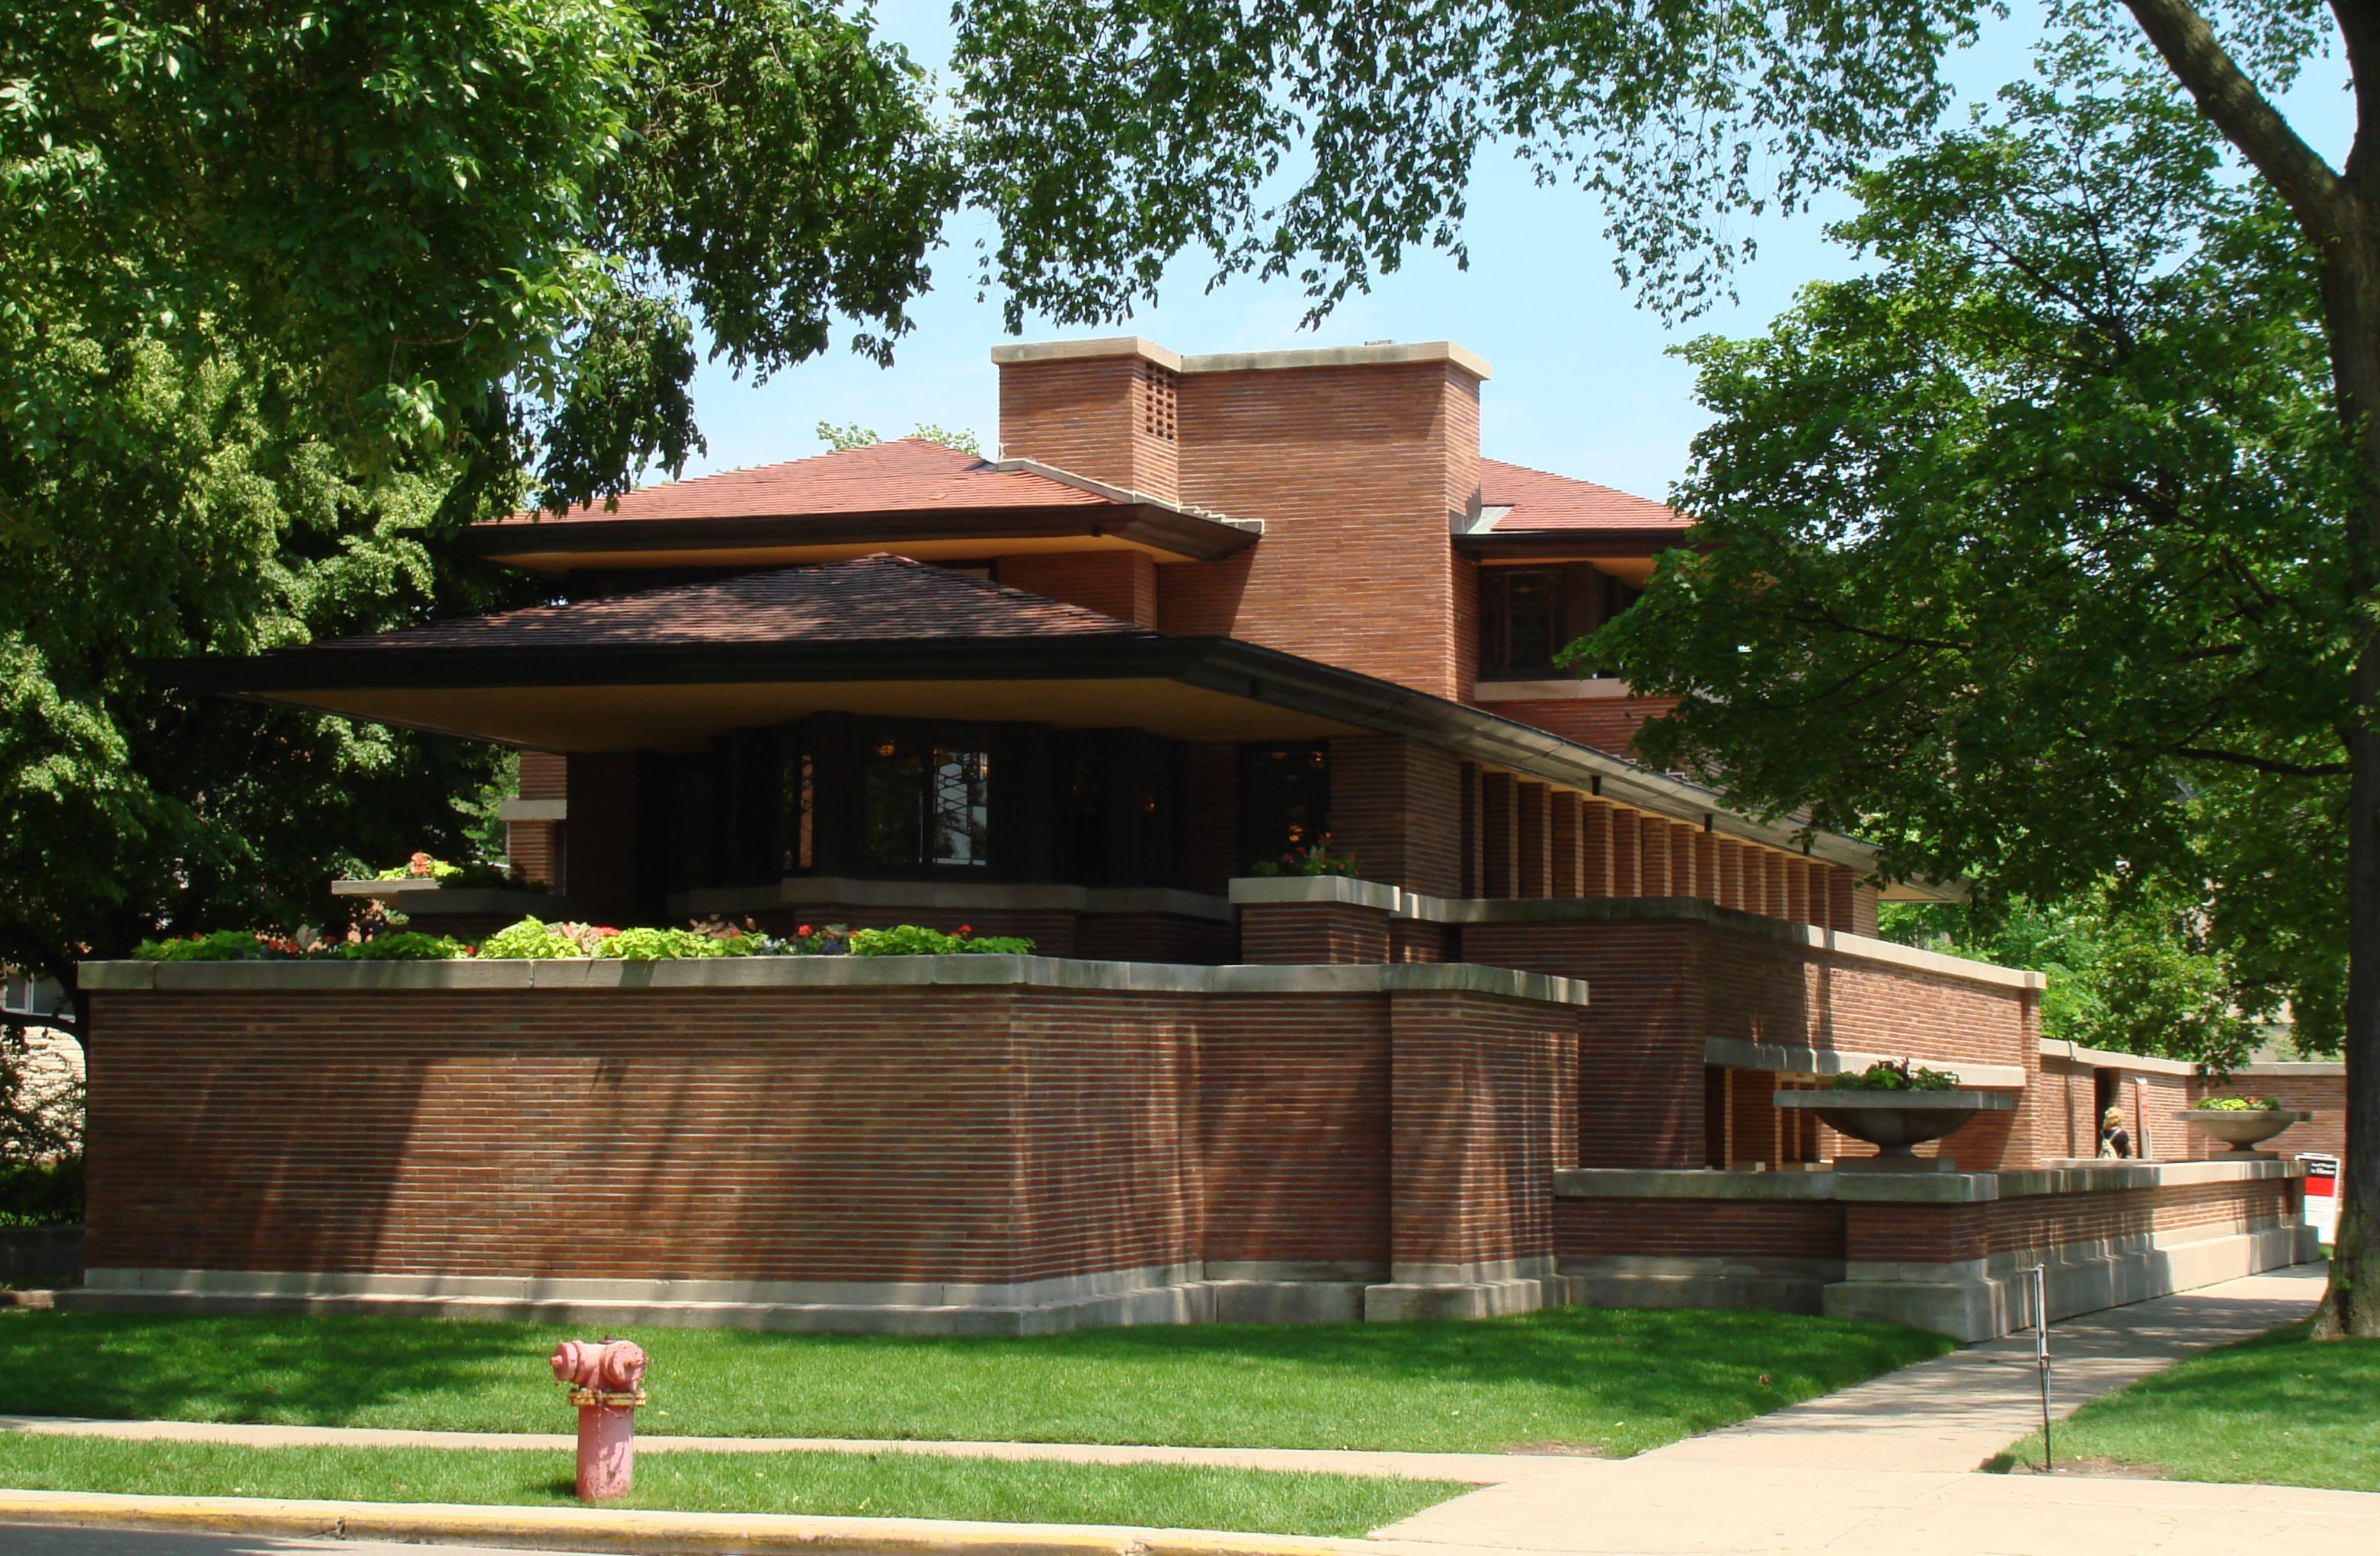 Unique robie house on home design with robie house frank for Frank lloyd wright house design